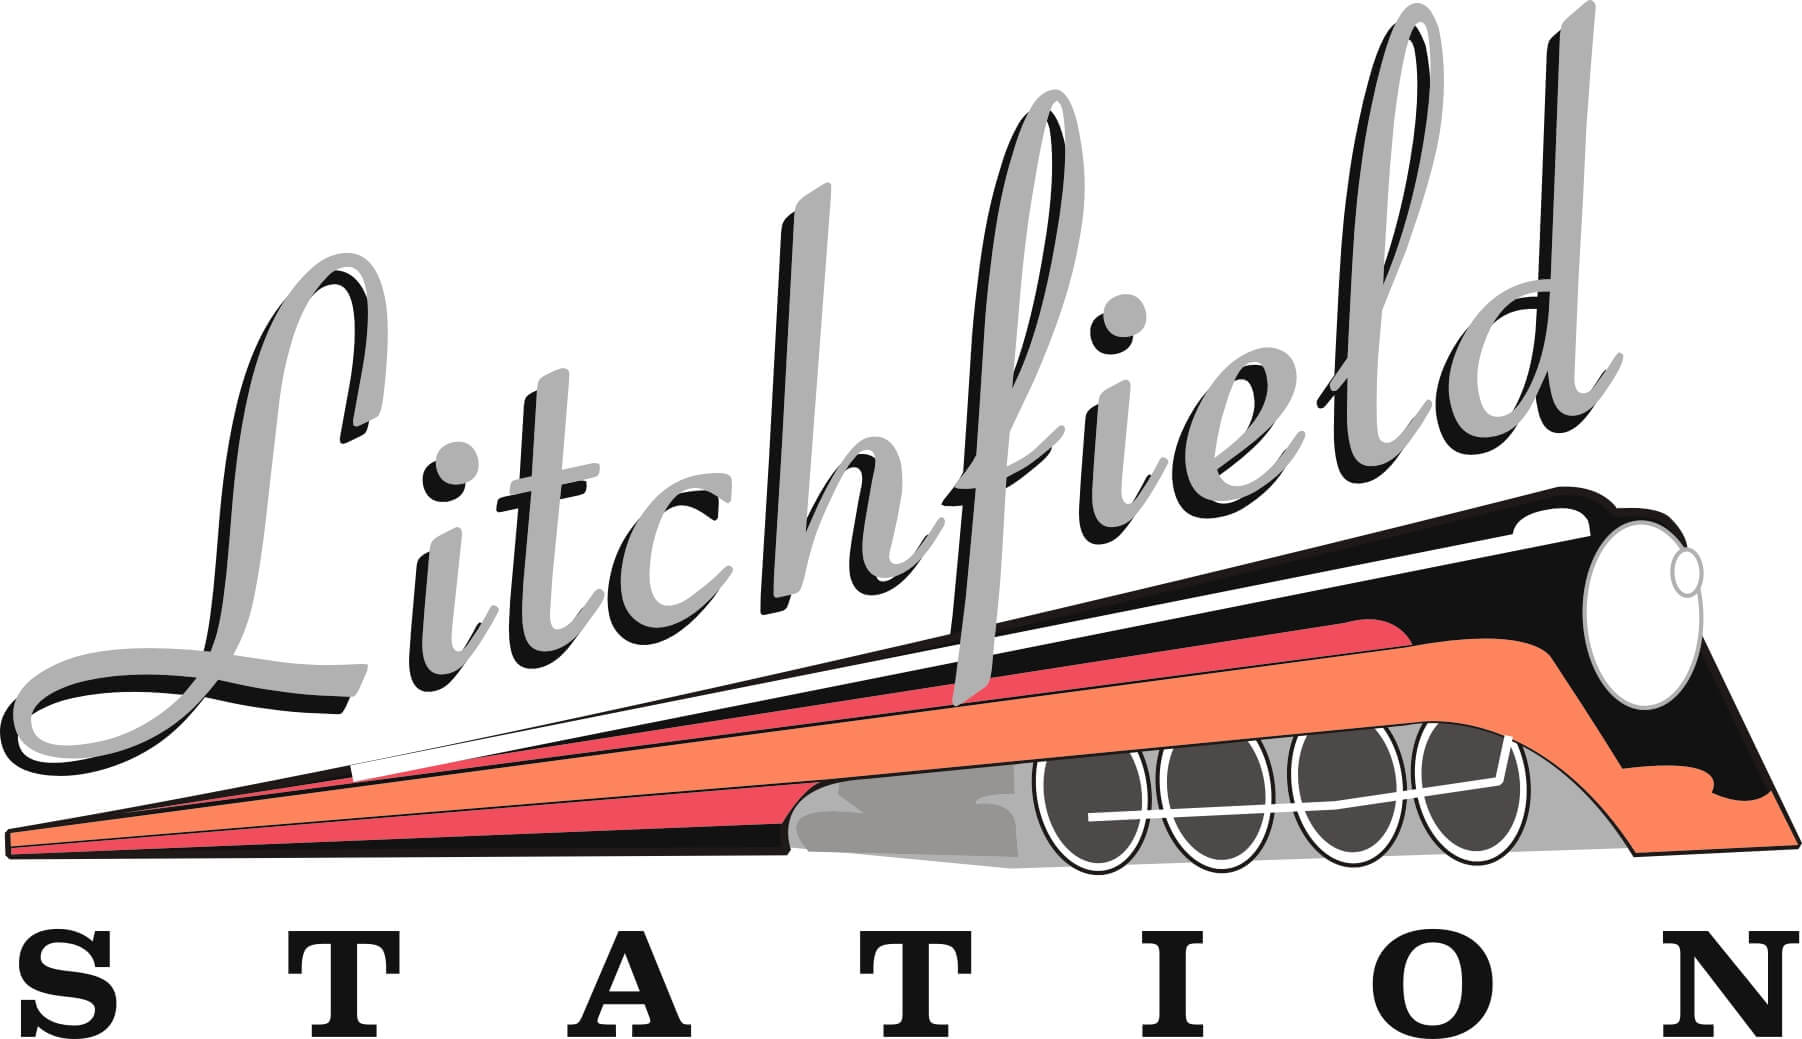 Litchfield Station Where We Make Dcc Fun Turnout Switch Wiring Track